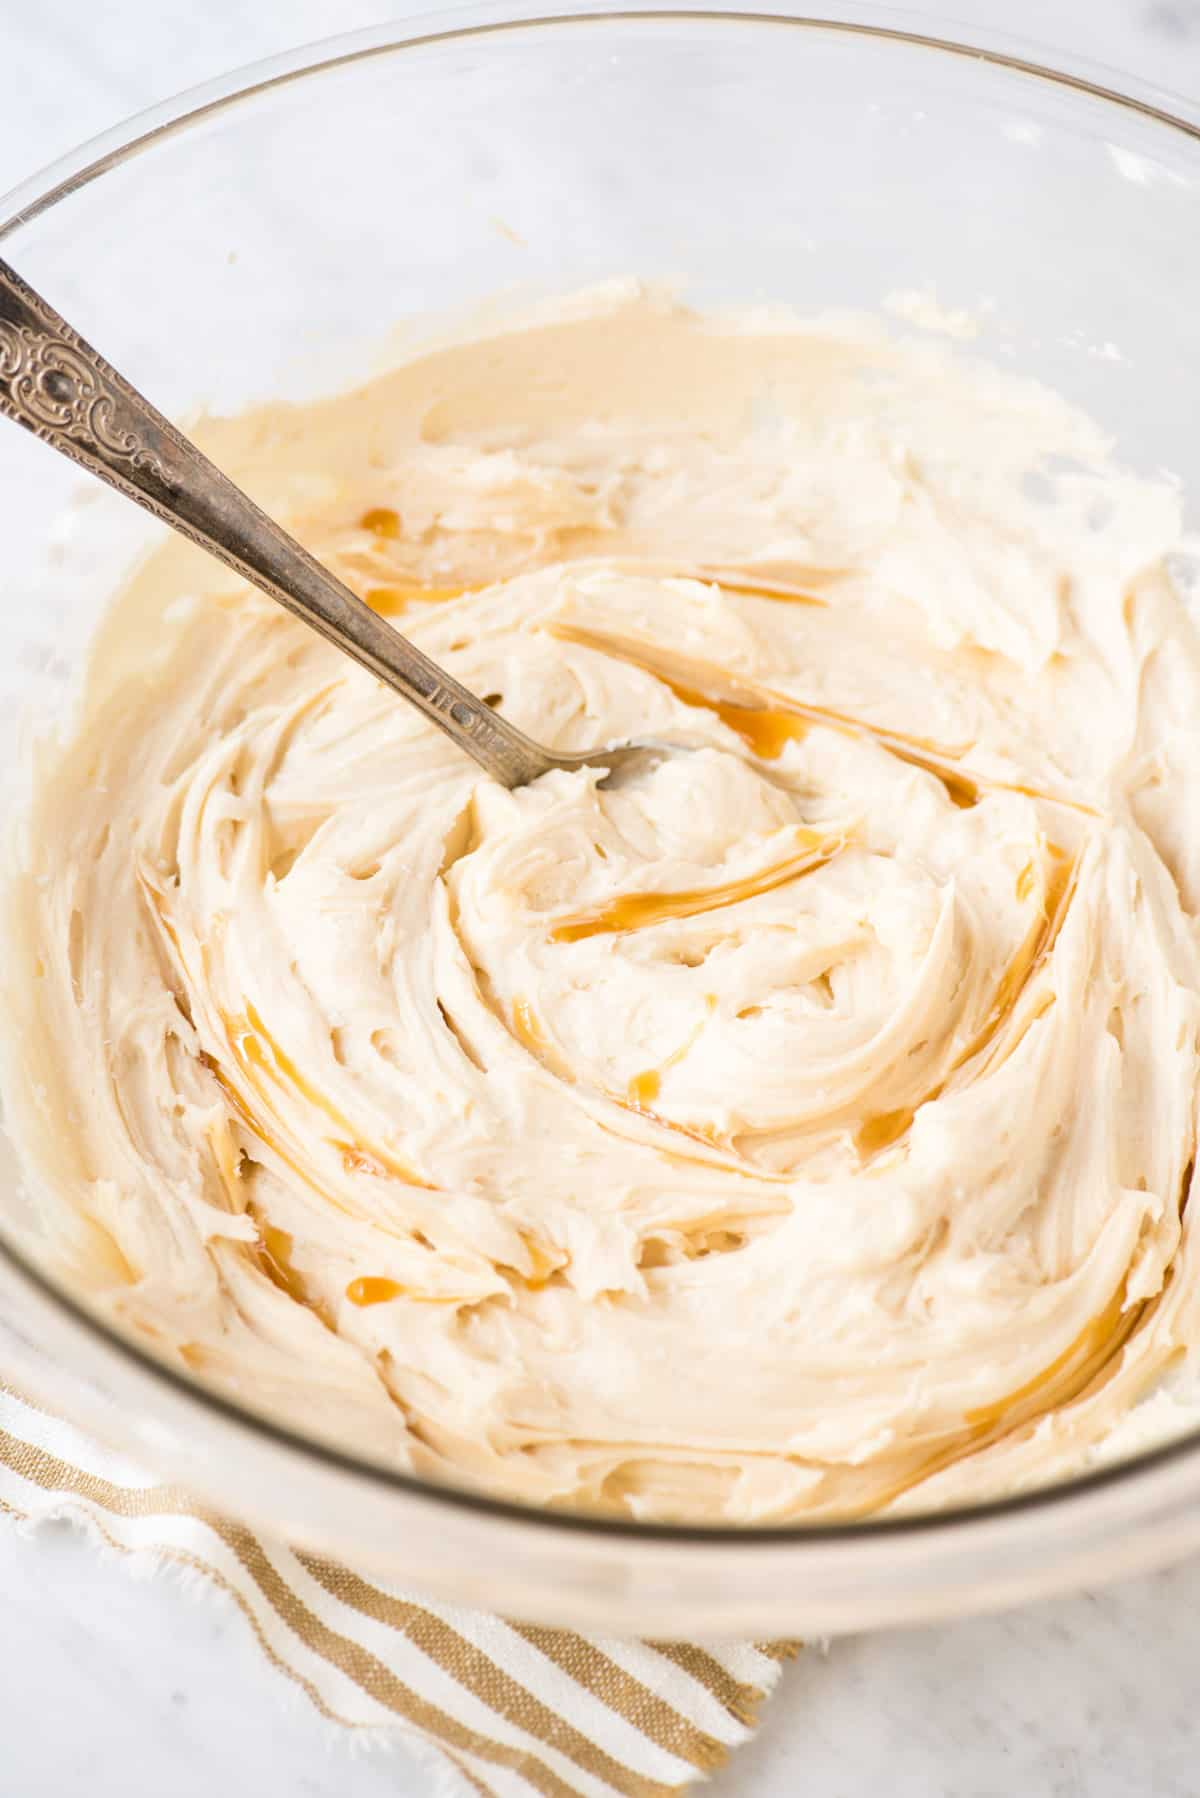 salted caramel frosting with caramel sauce swirled in glass bowl